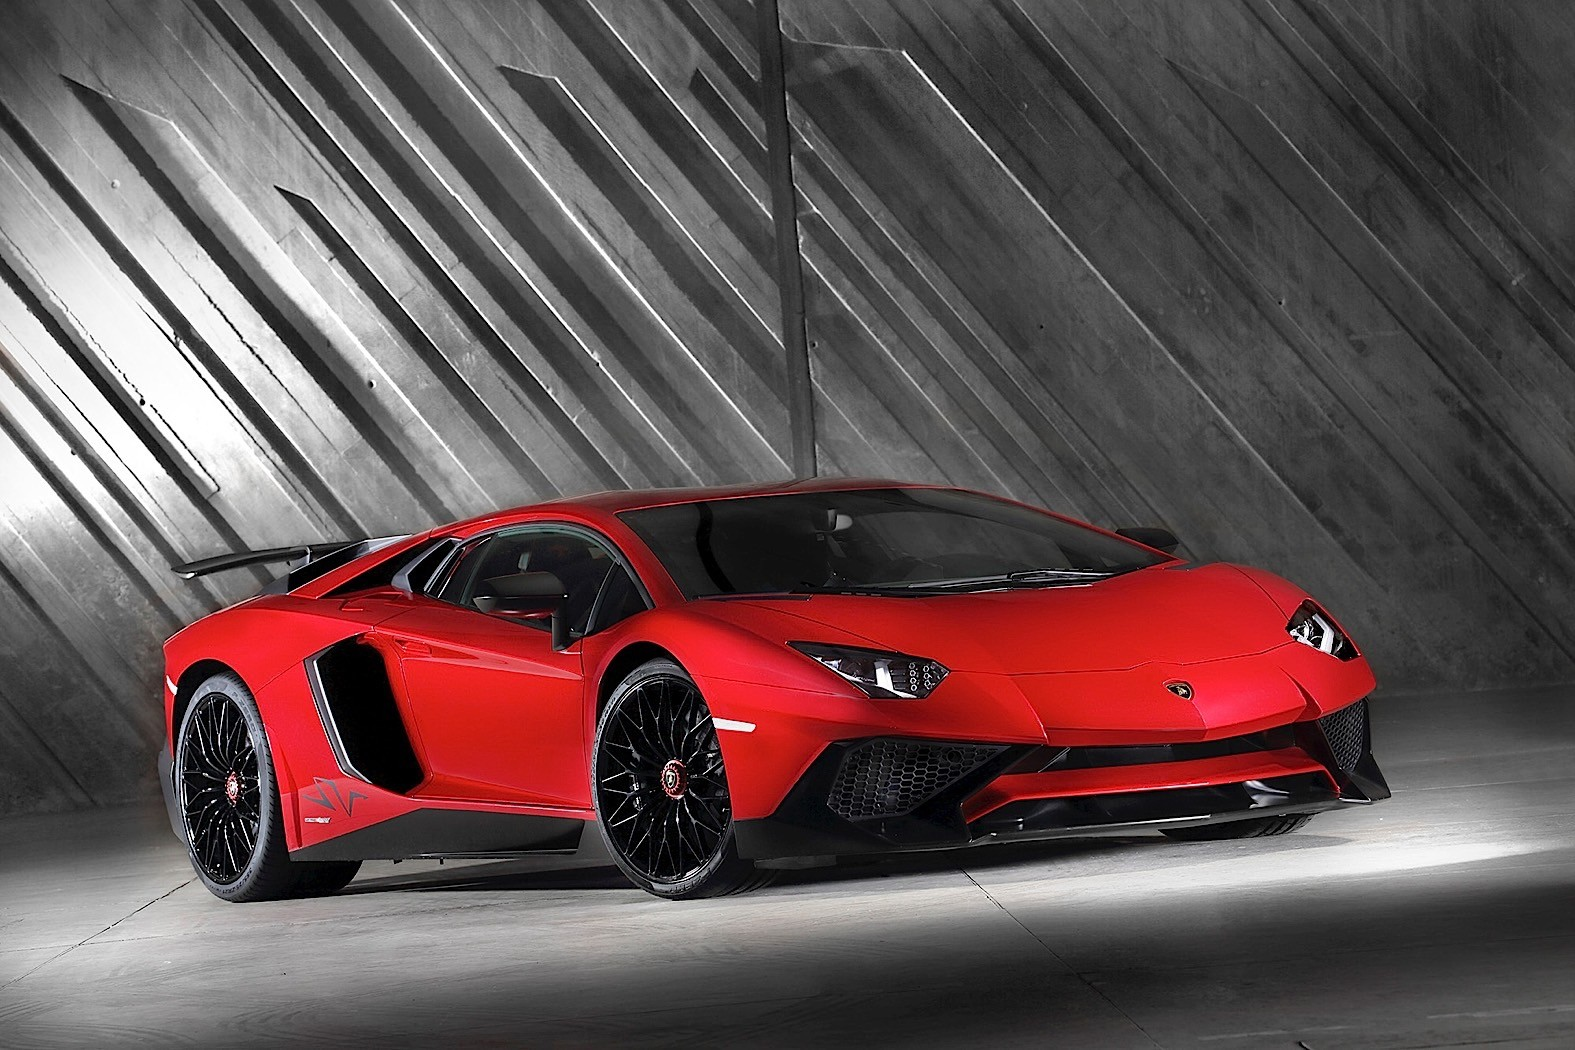 2017 Lamborghini Aventador Lp 750 4 Superveloce Review HD Wallpapers Download free images and photos [musssic.tk]